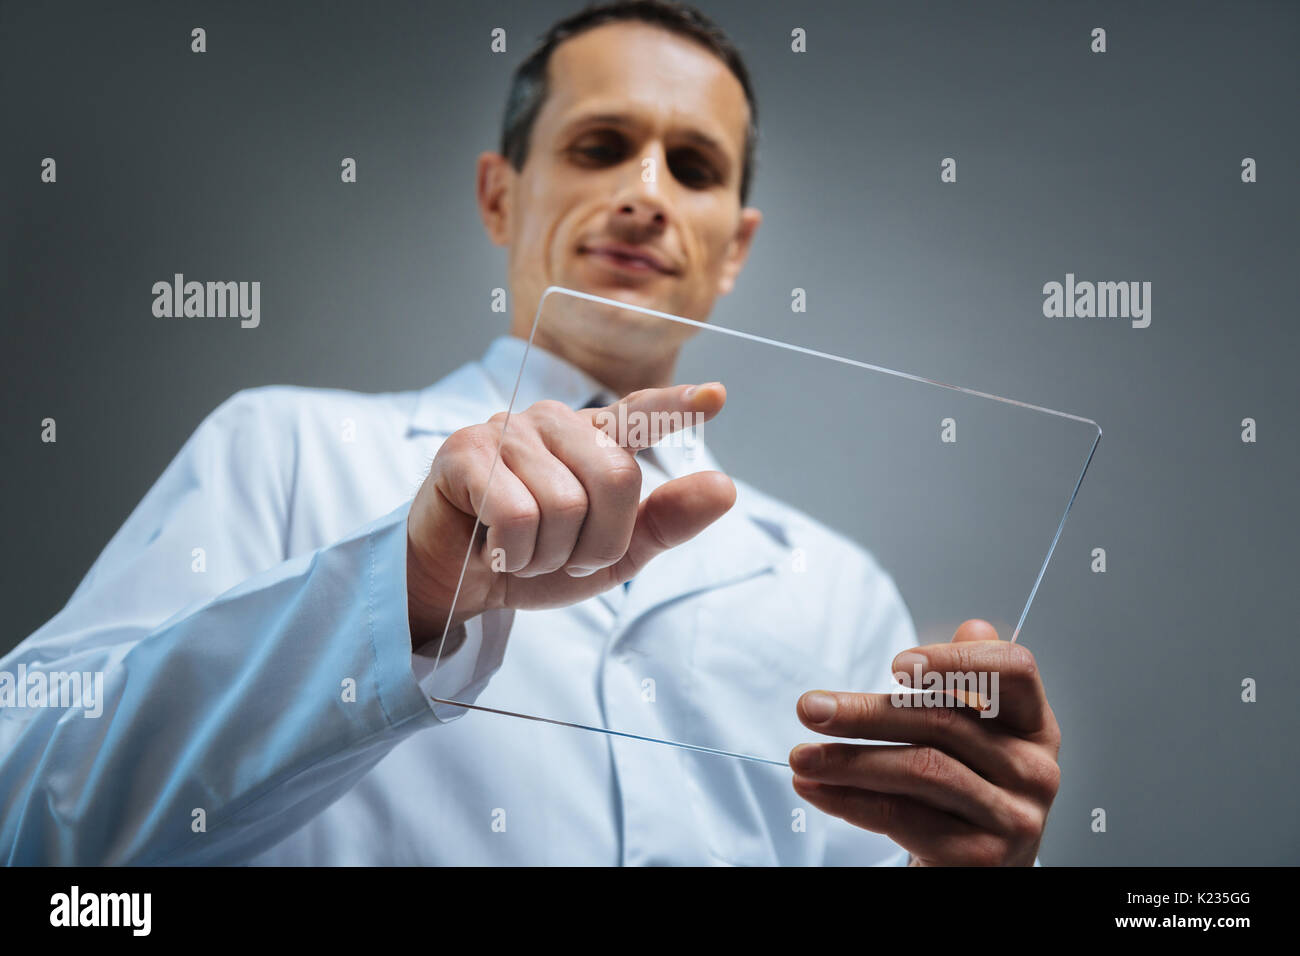 Selective focus on transparent gadget held by mature man Stock Photo